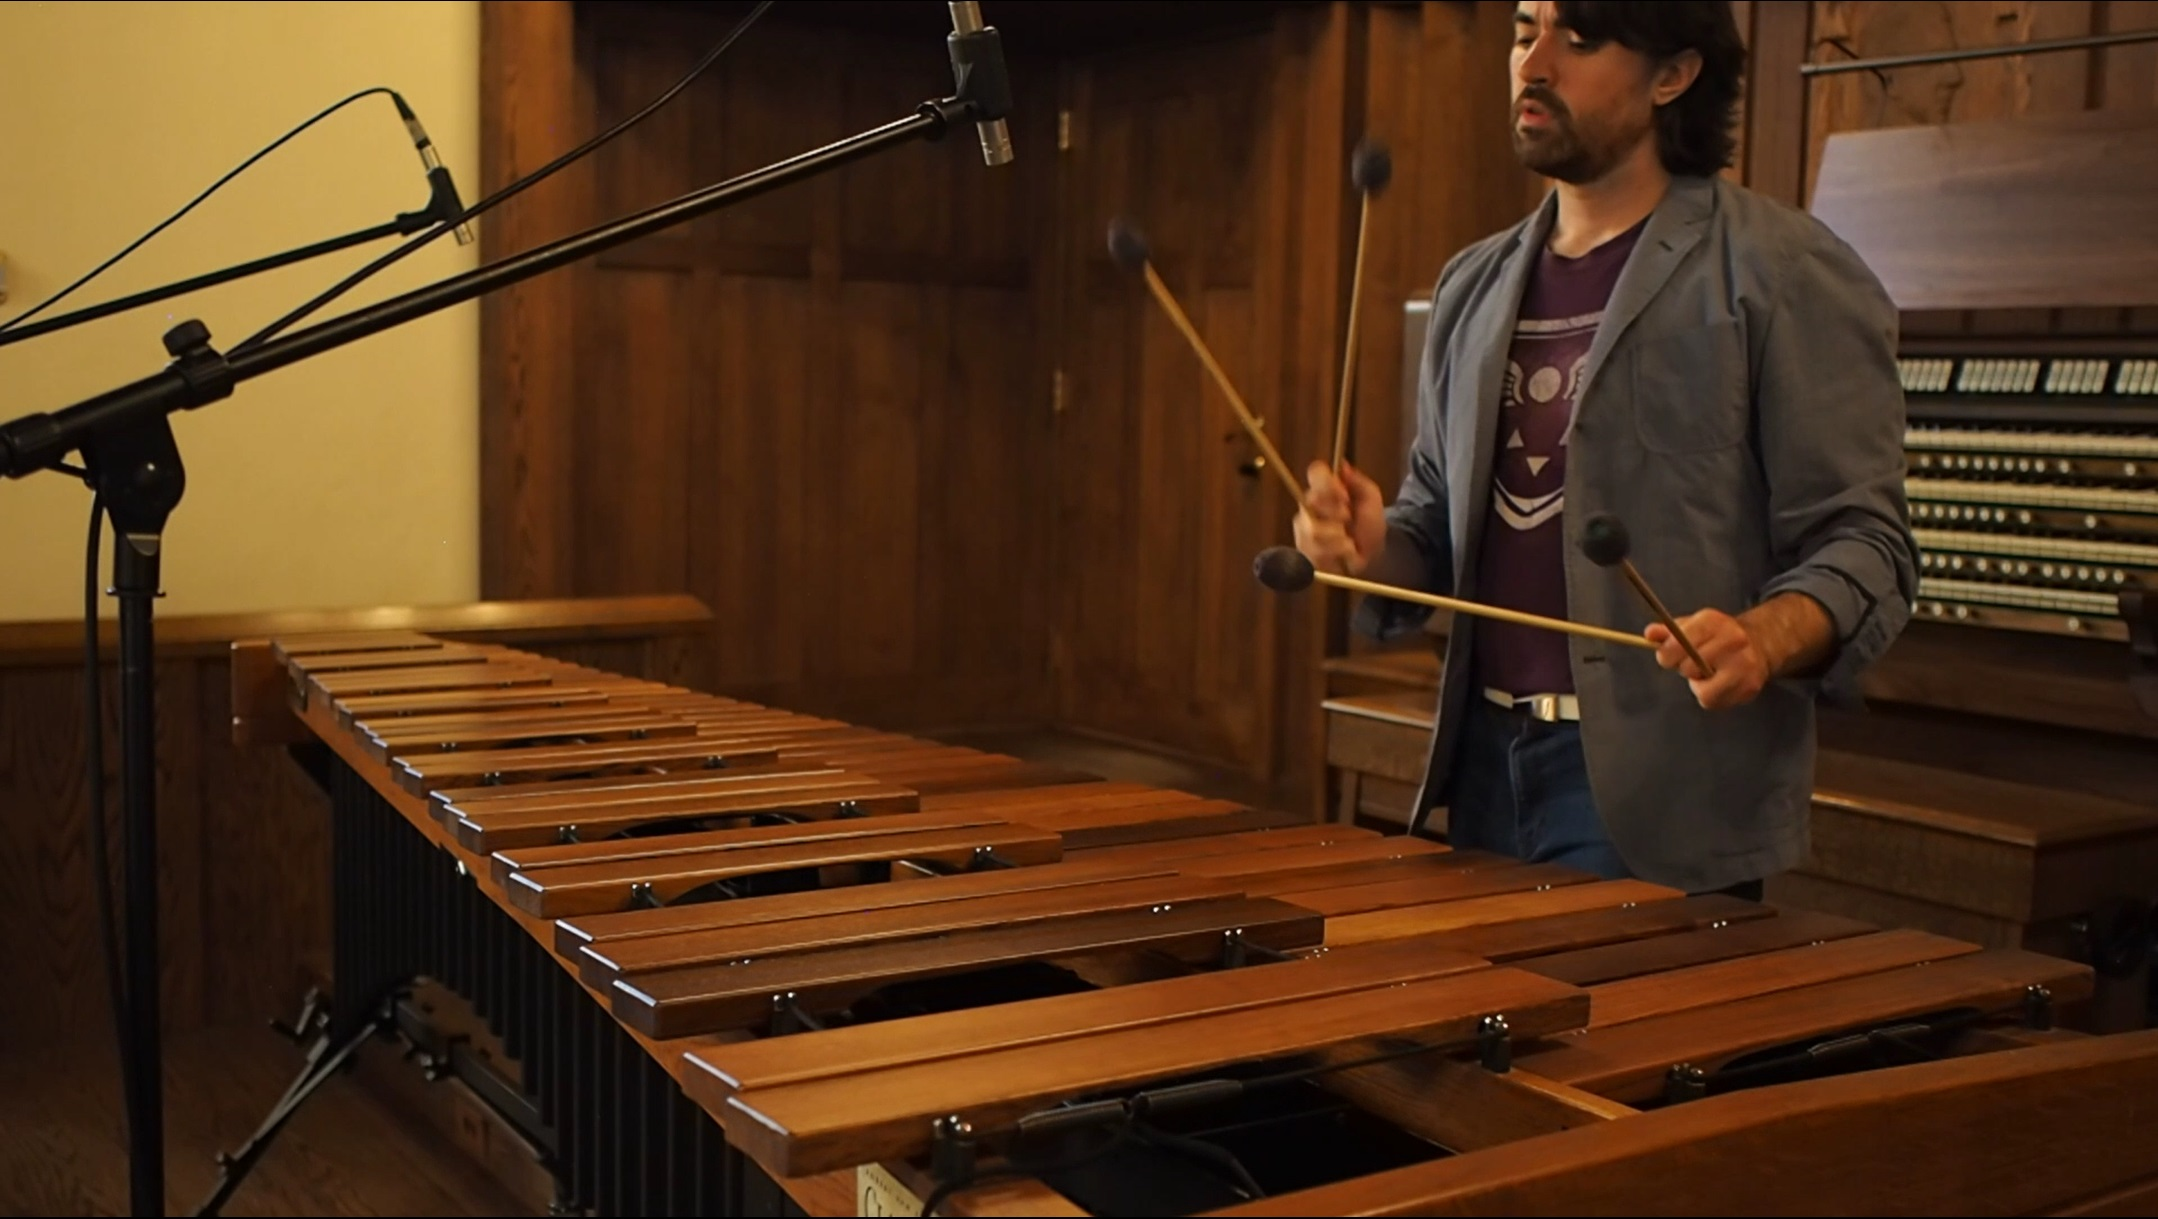 Doug Perry on the Marimba